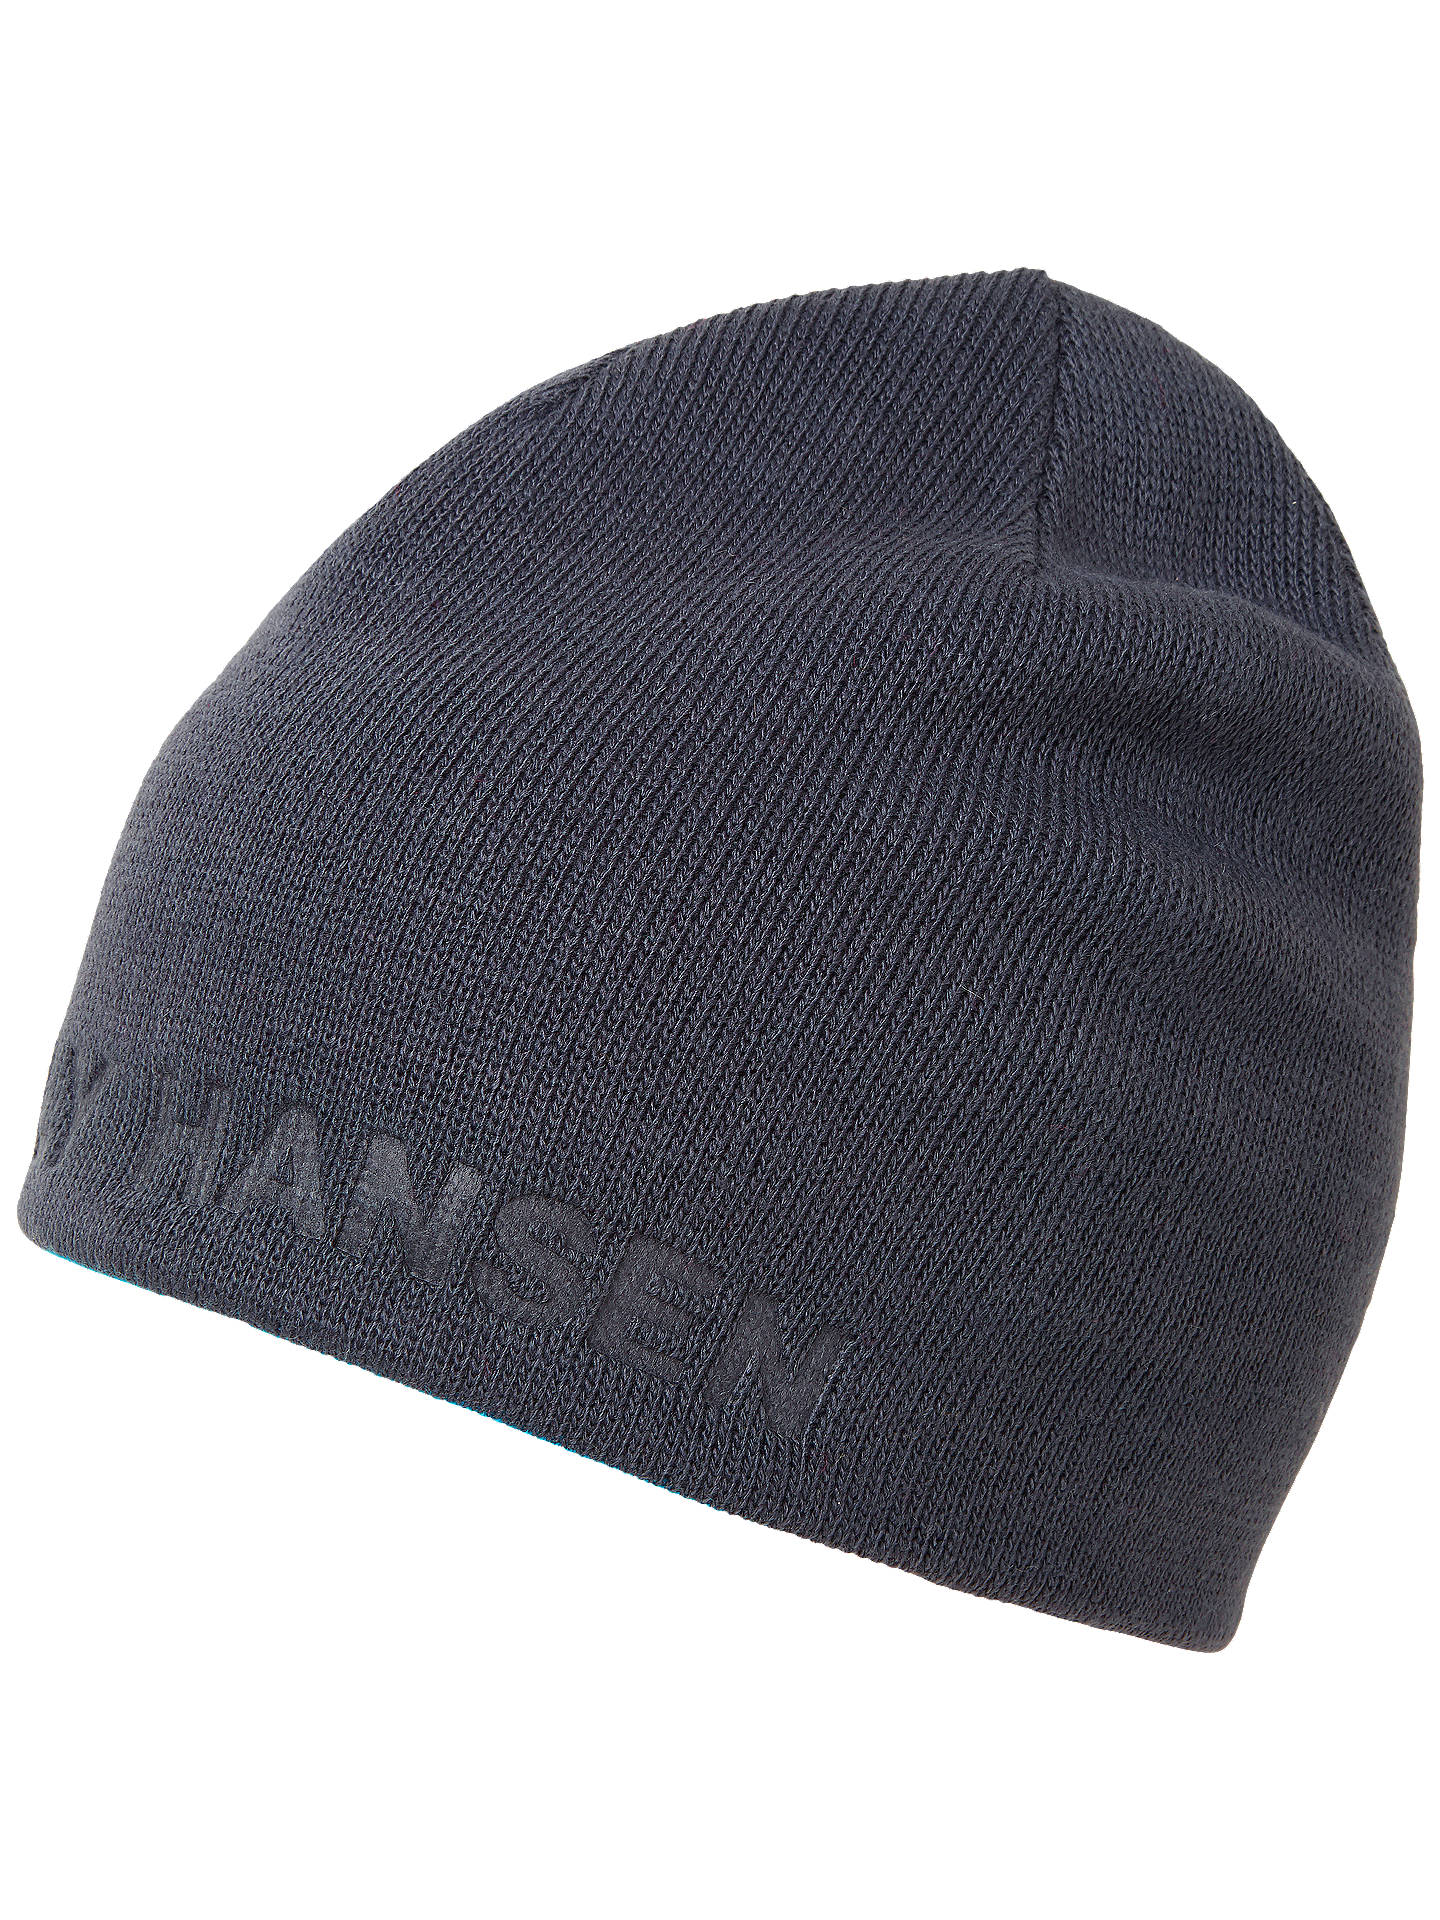 cc86a562117 Buy Helly Hansen Outline Reversible Beanie Hat